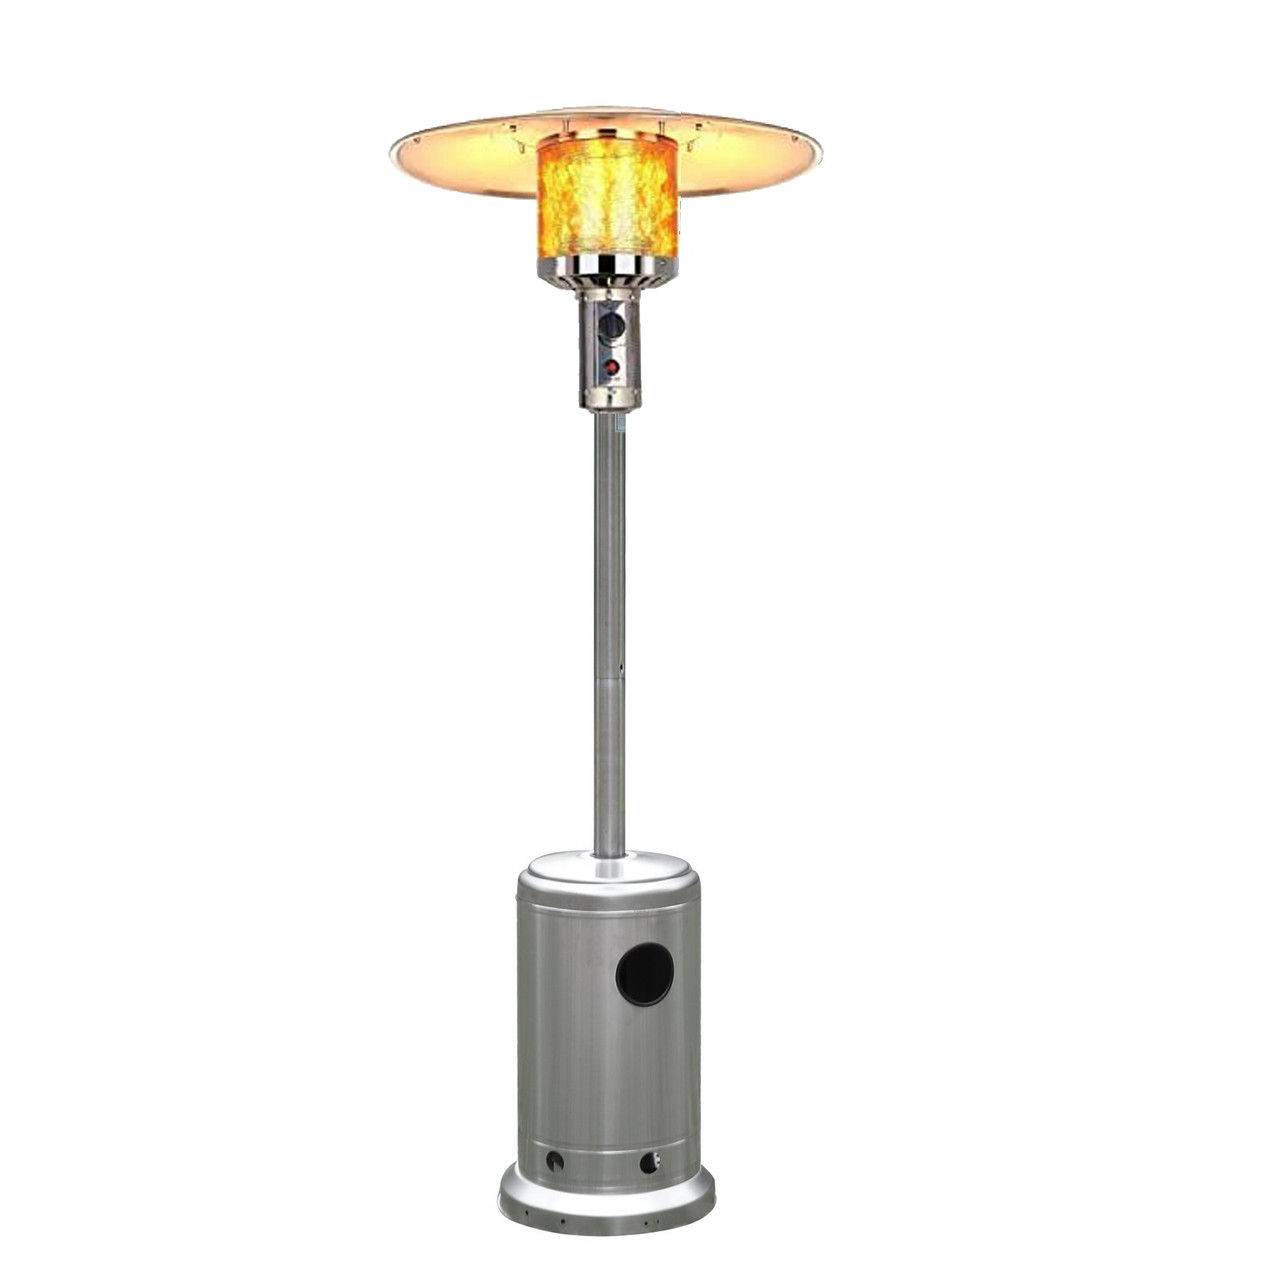 Stainless Steel Patio Heater Outdoor Propane Gas Floor Stand Heating 50000 BTU